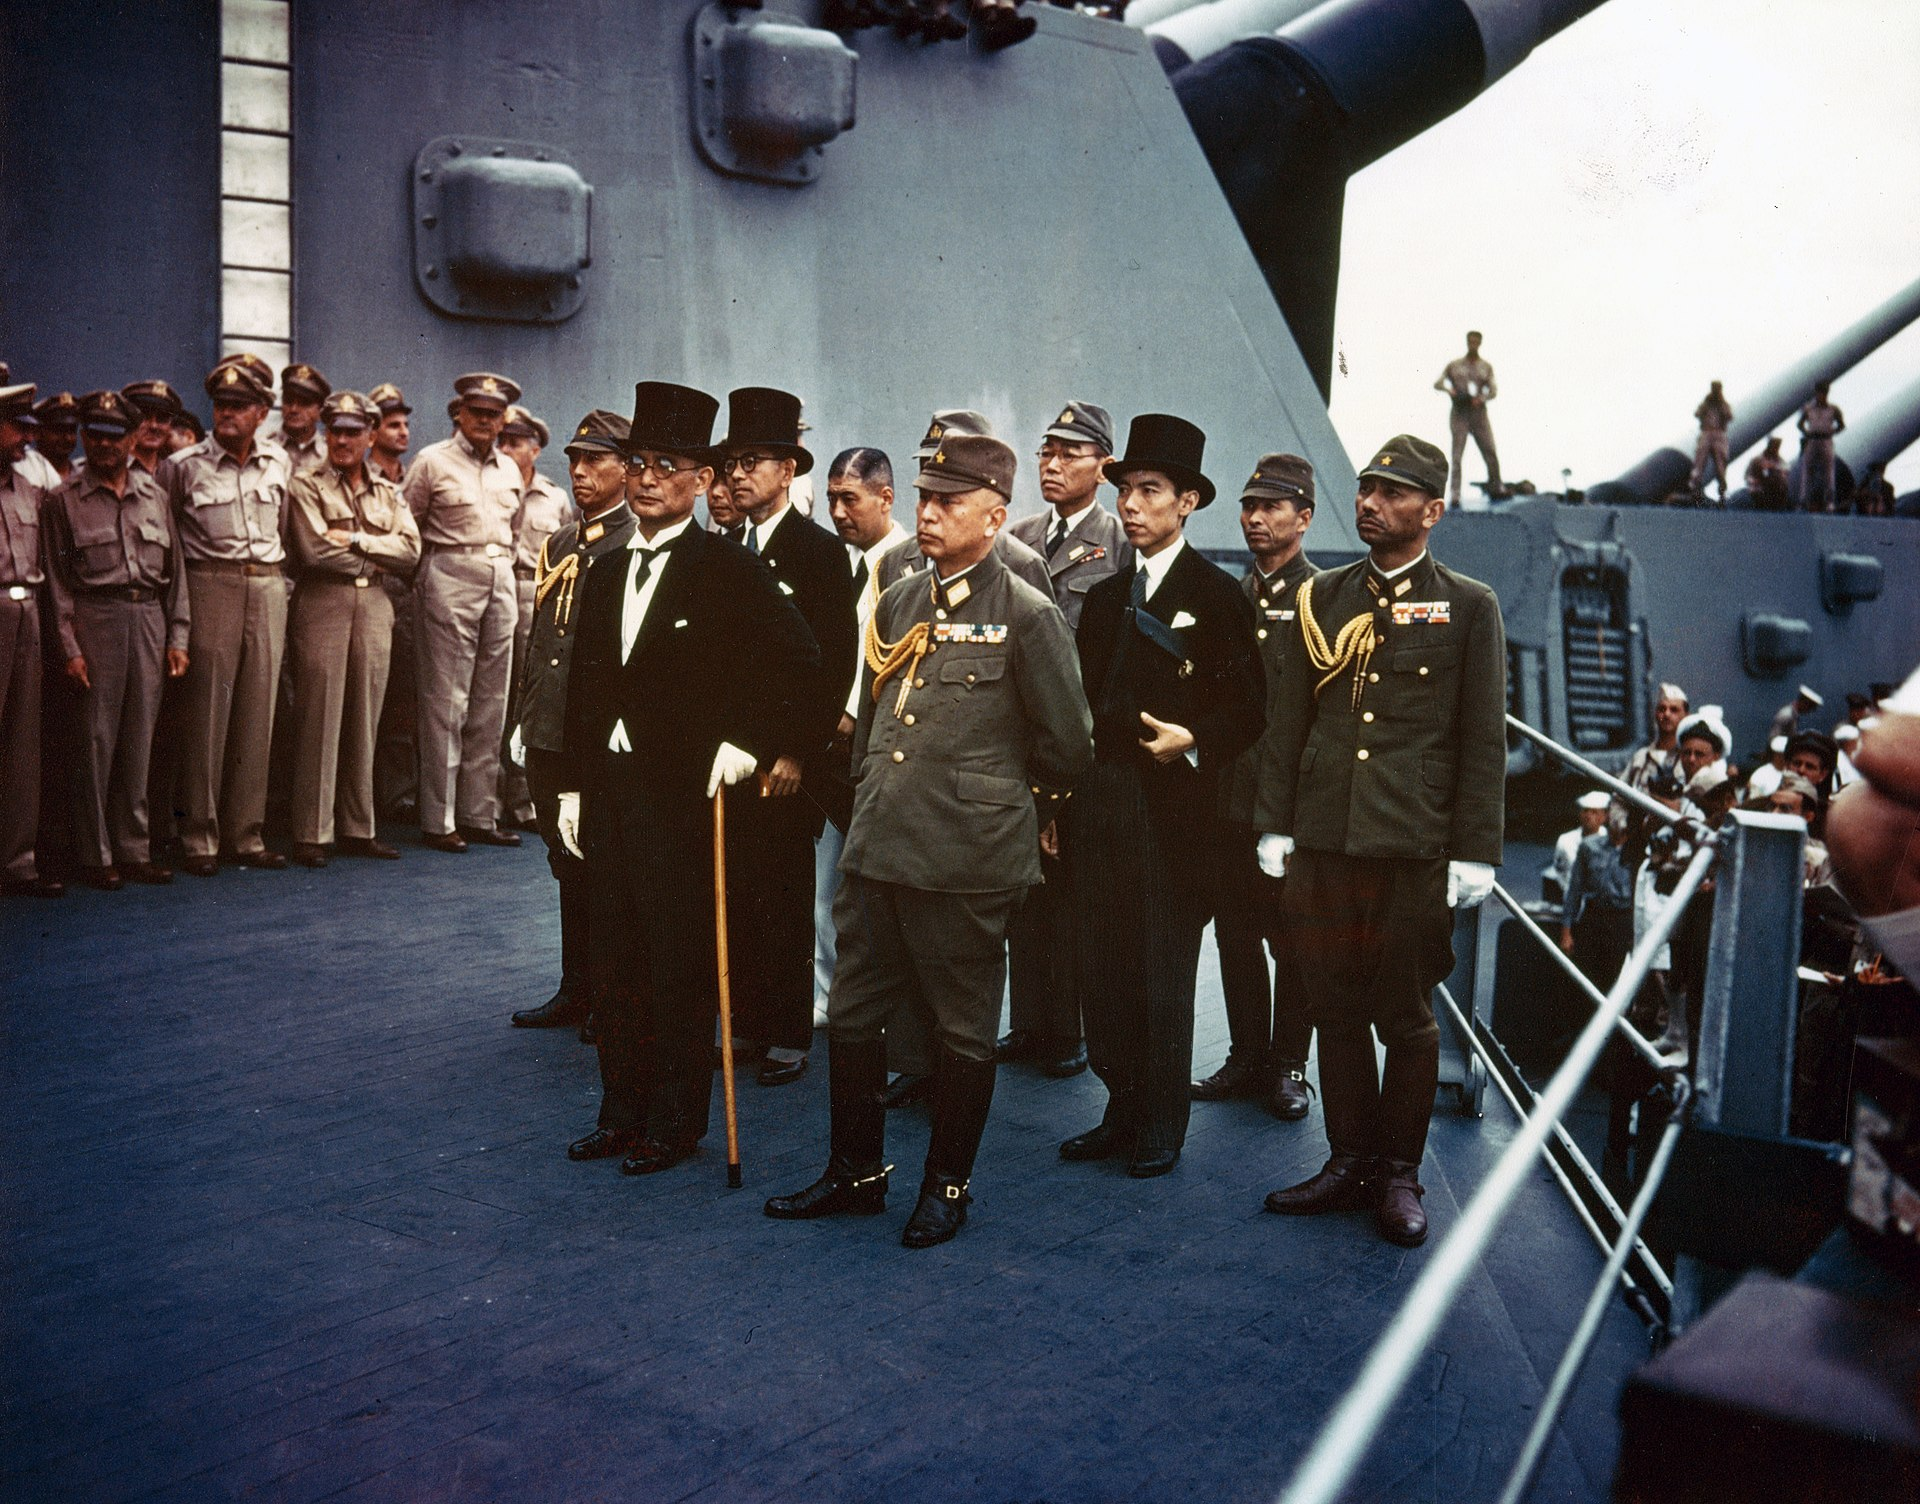 https://upload.wikimedia.org/wikipedia/commons/thumb/2/27/Surrender_of_Japan_-_USS_Missouri.jpg/1920px-Surrender_of_Japan_-_USS_Missouri.jpg